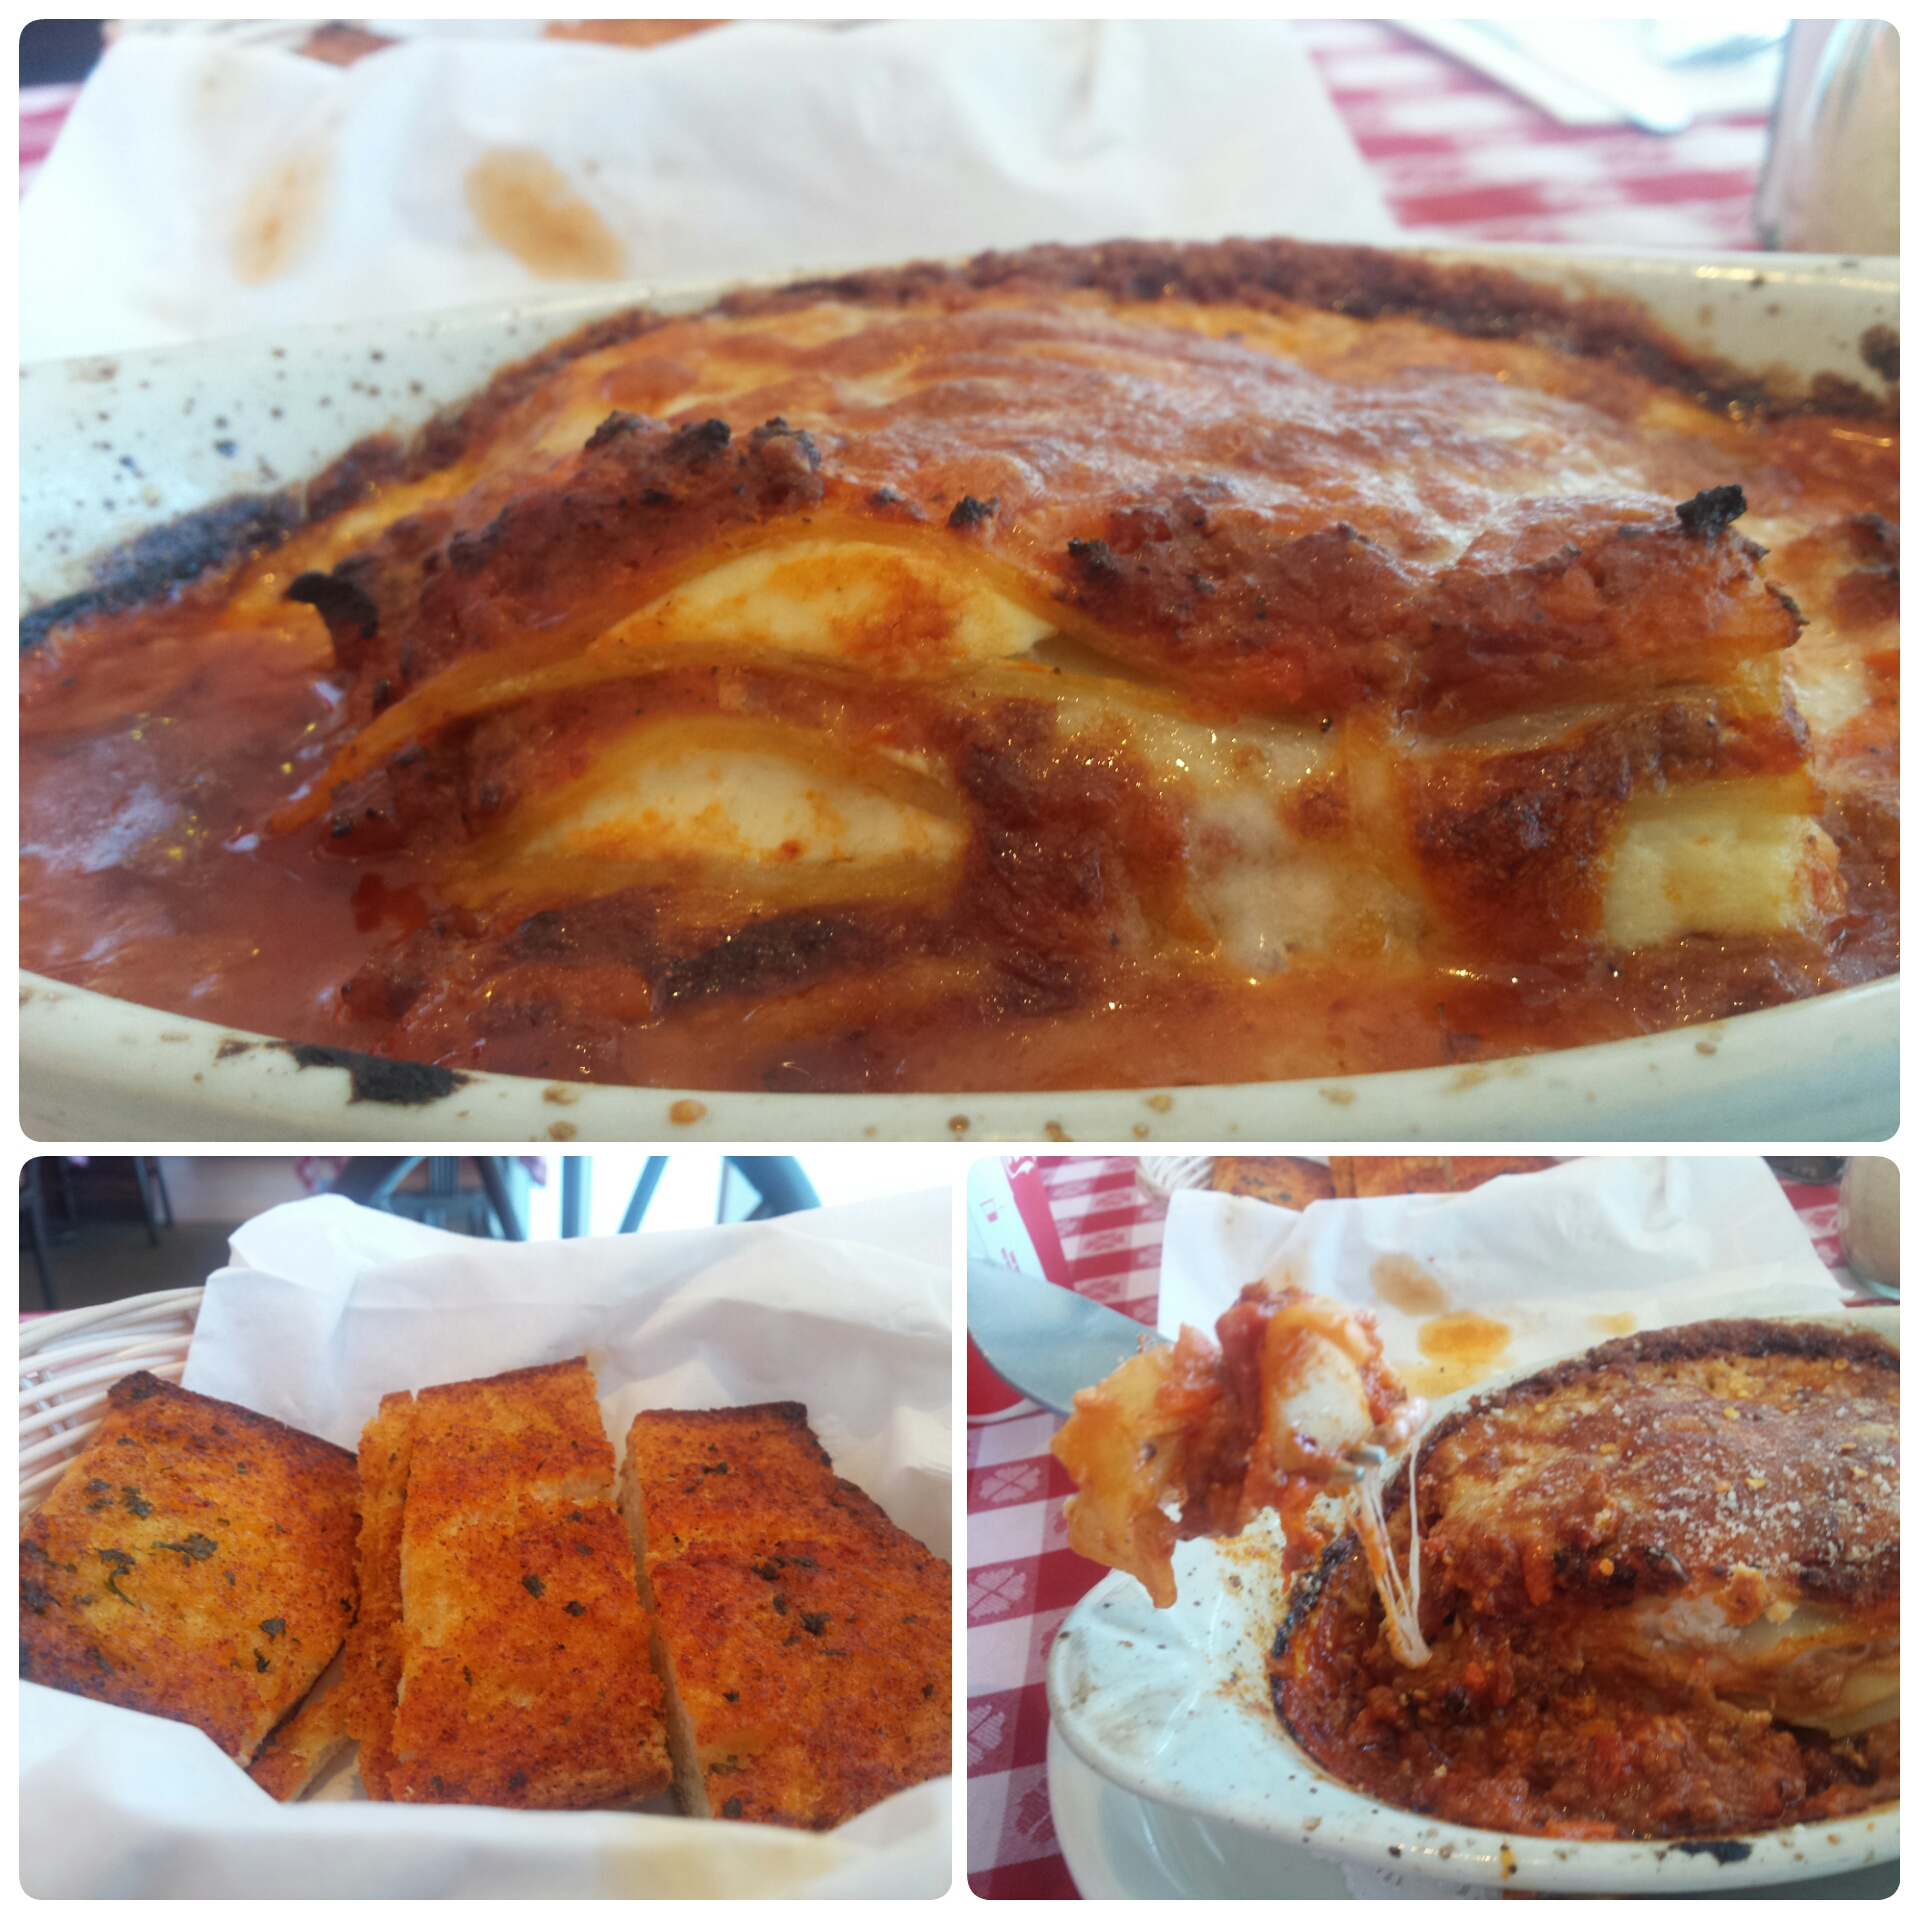 Meat Lasagna, Garlic Bread